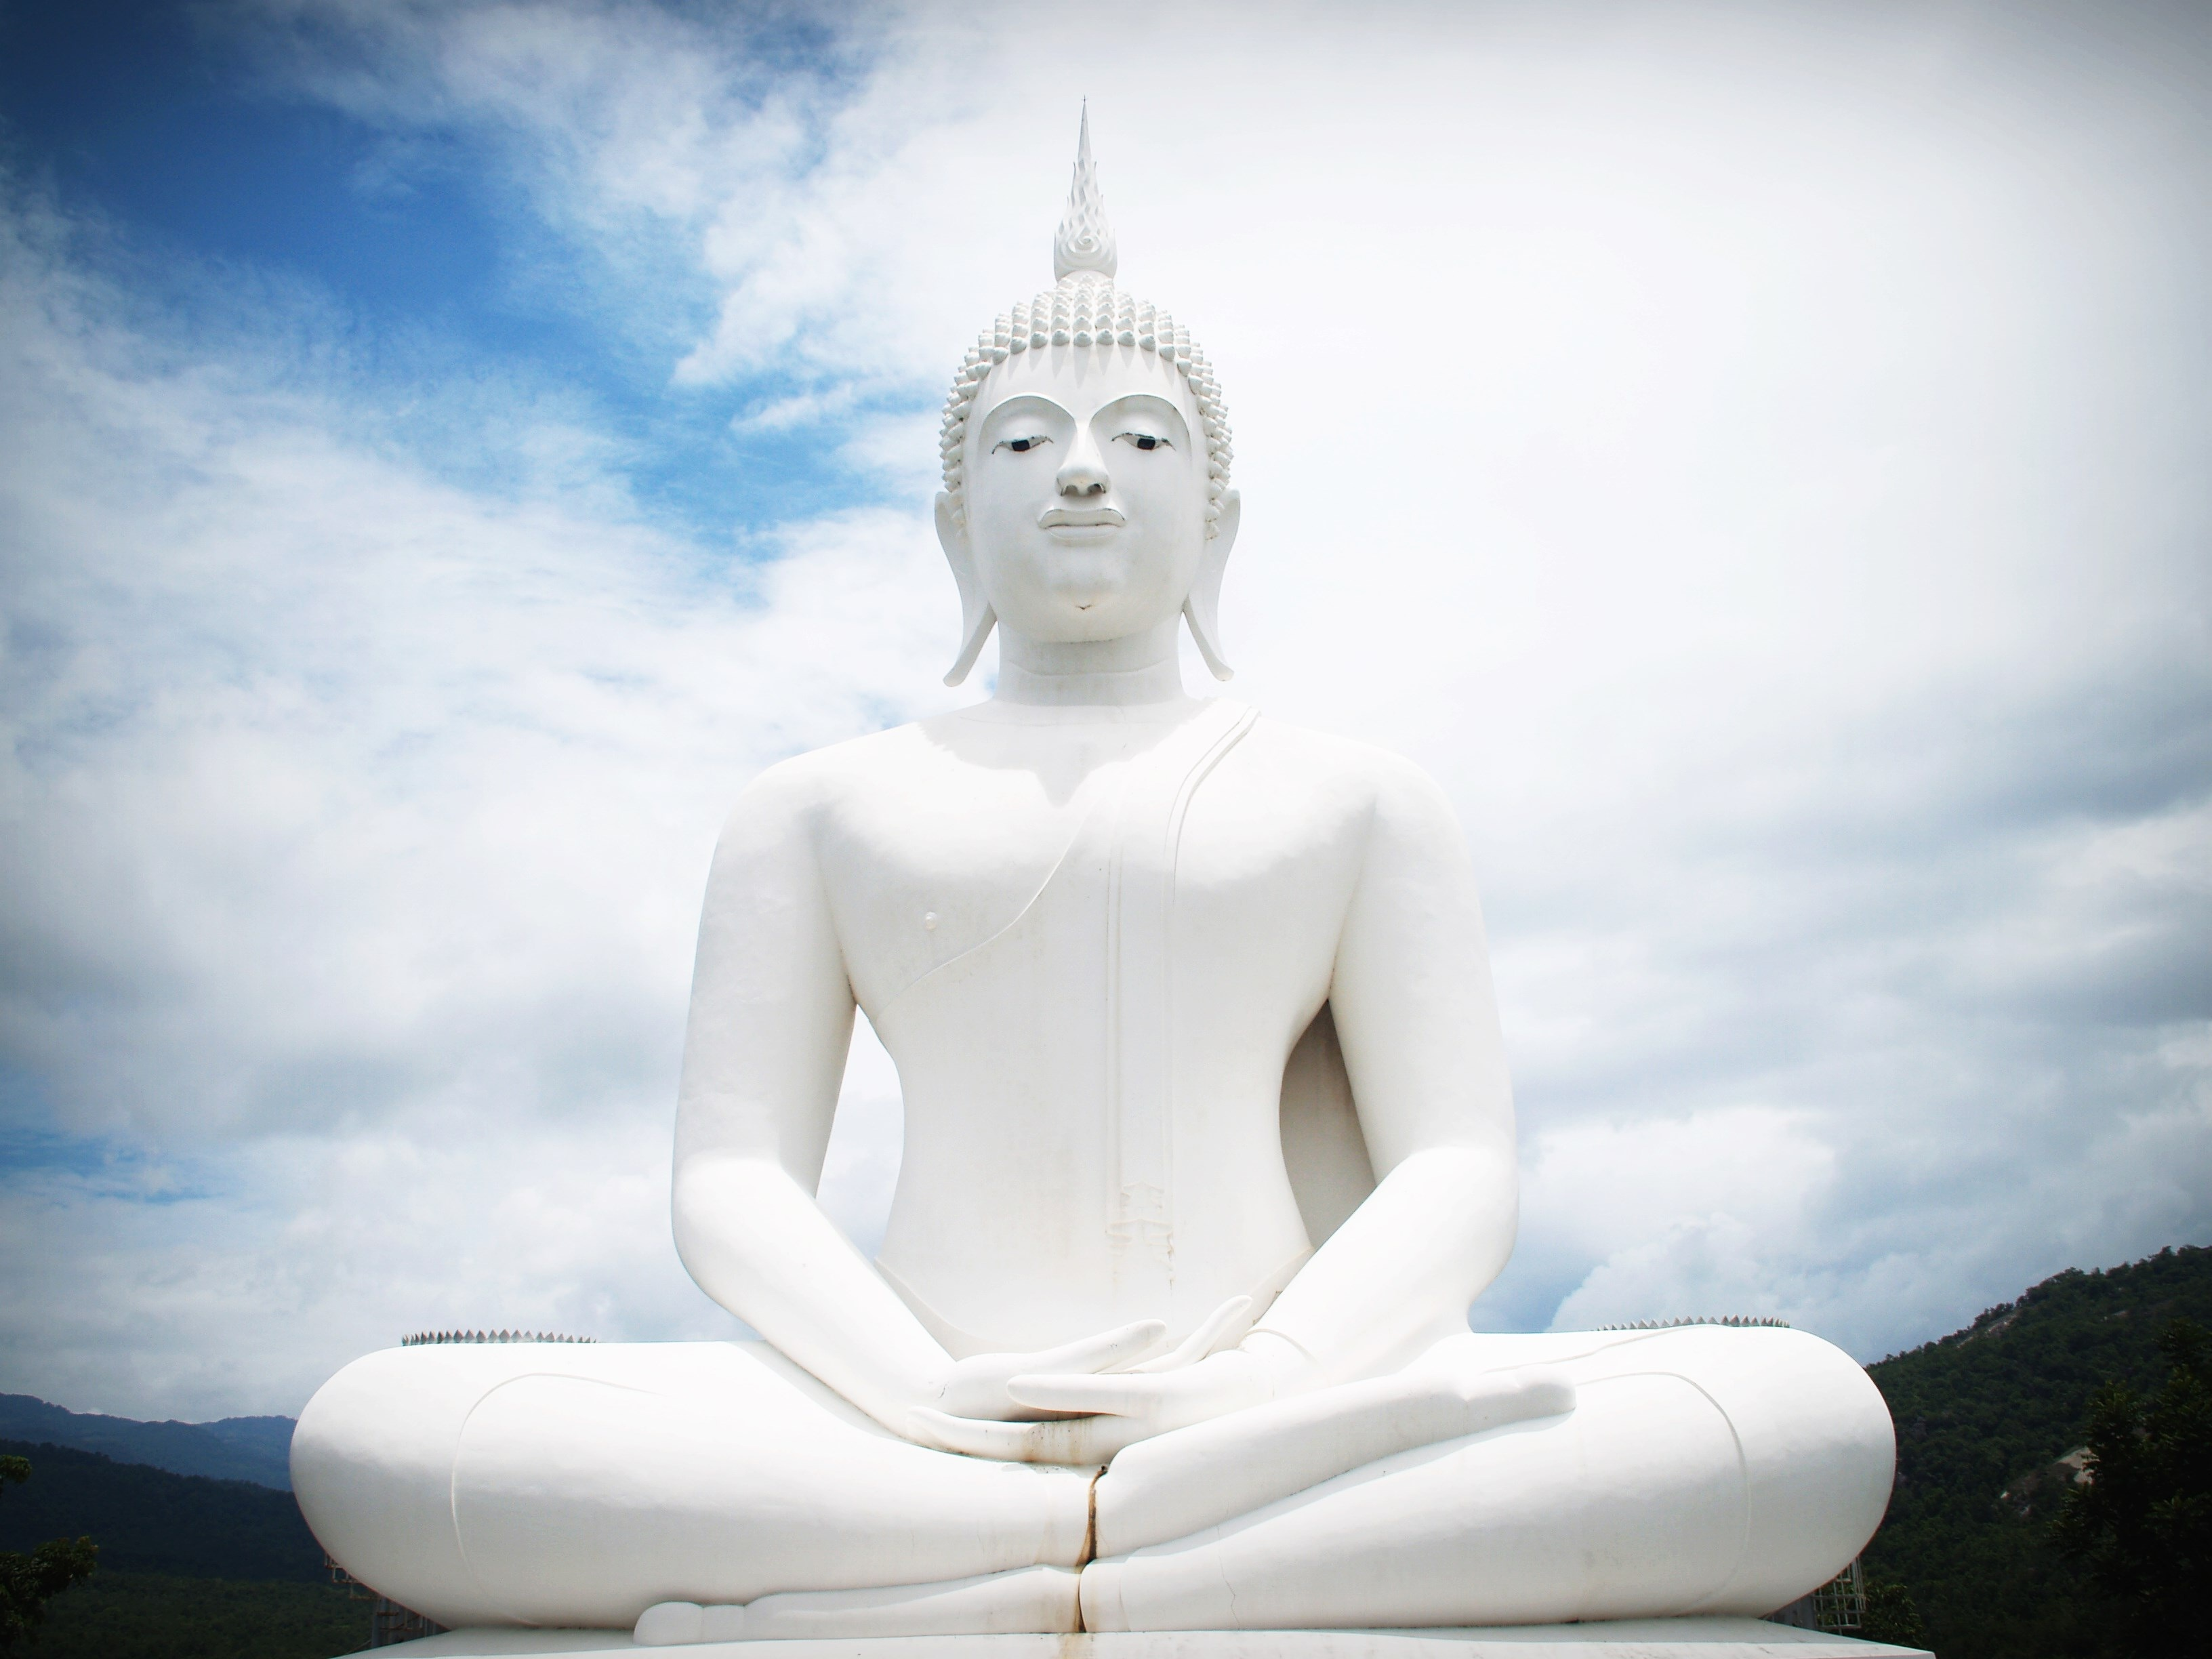 white concrete buddha statue free stock photo. Black Bedroom Furniture Sets. Home Design Ideas